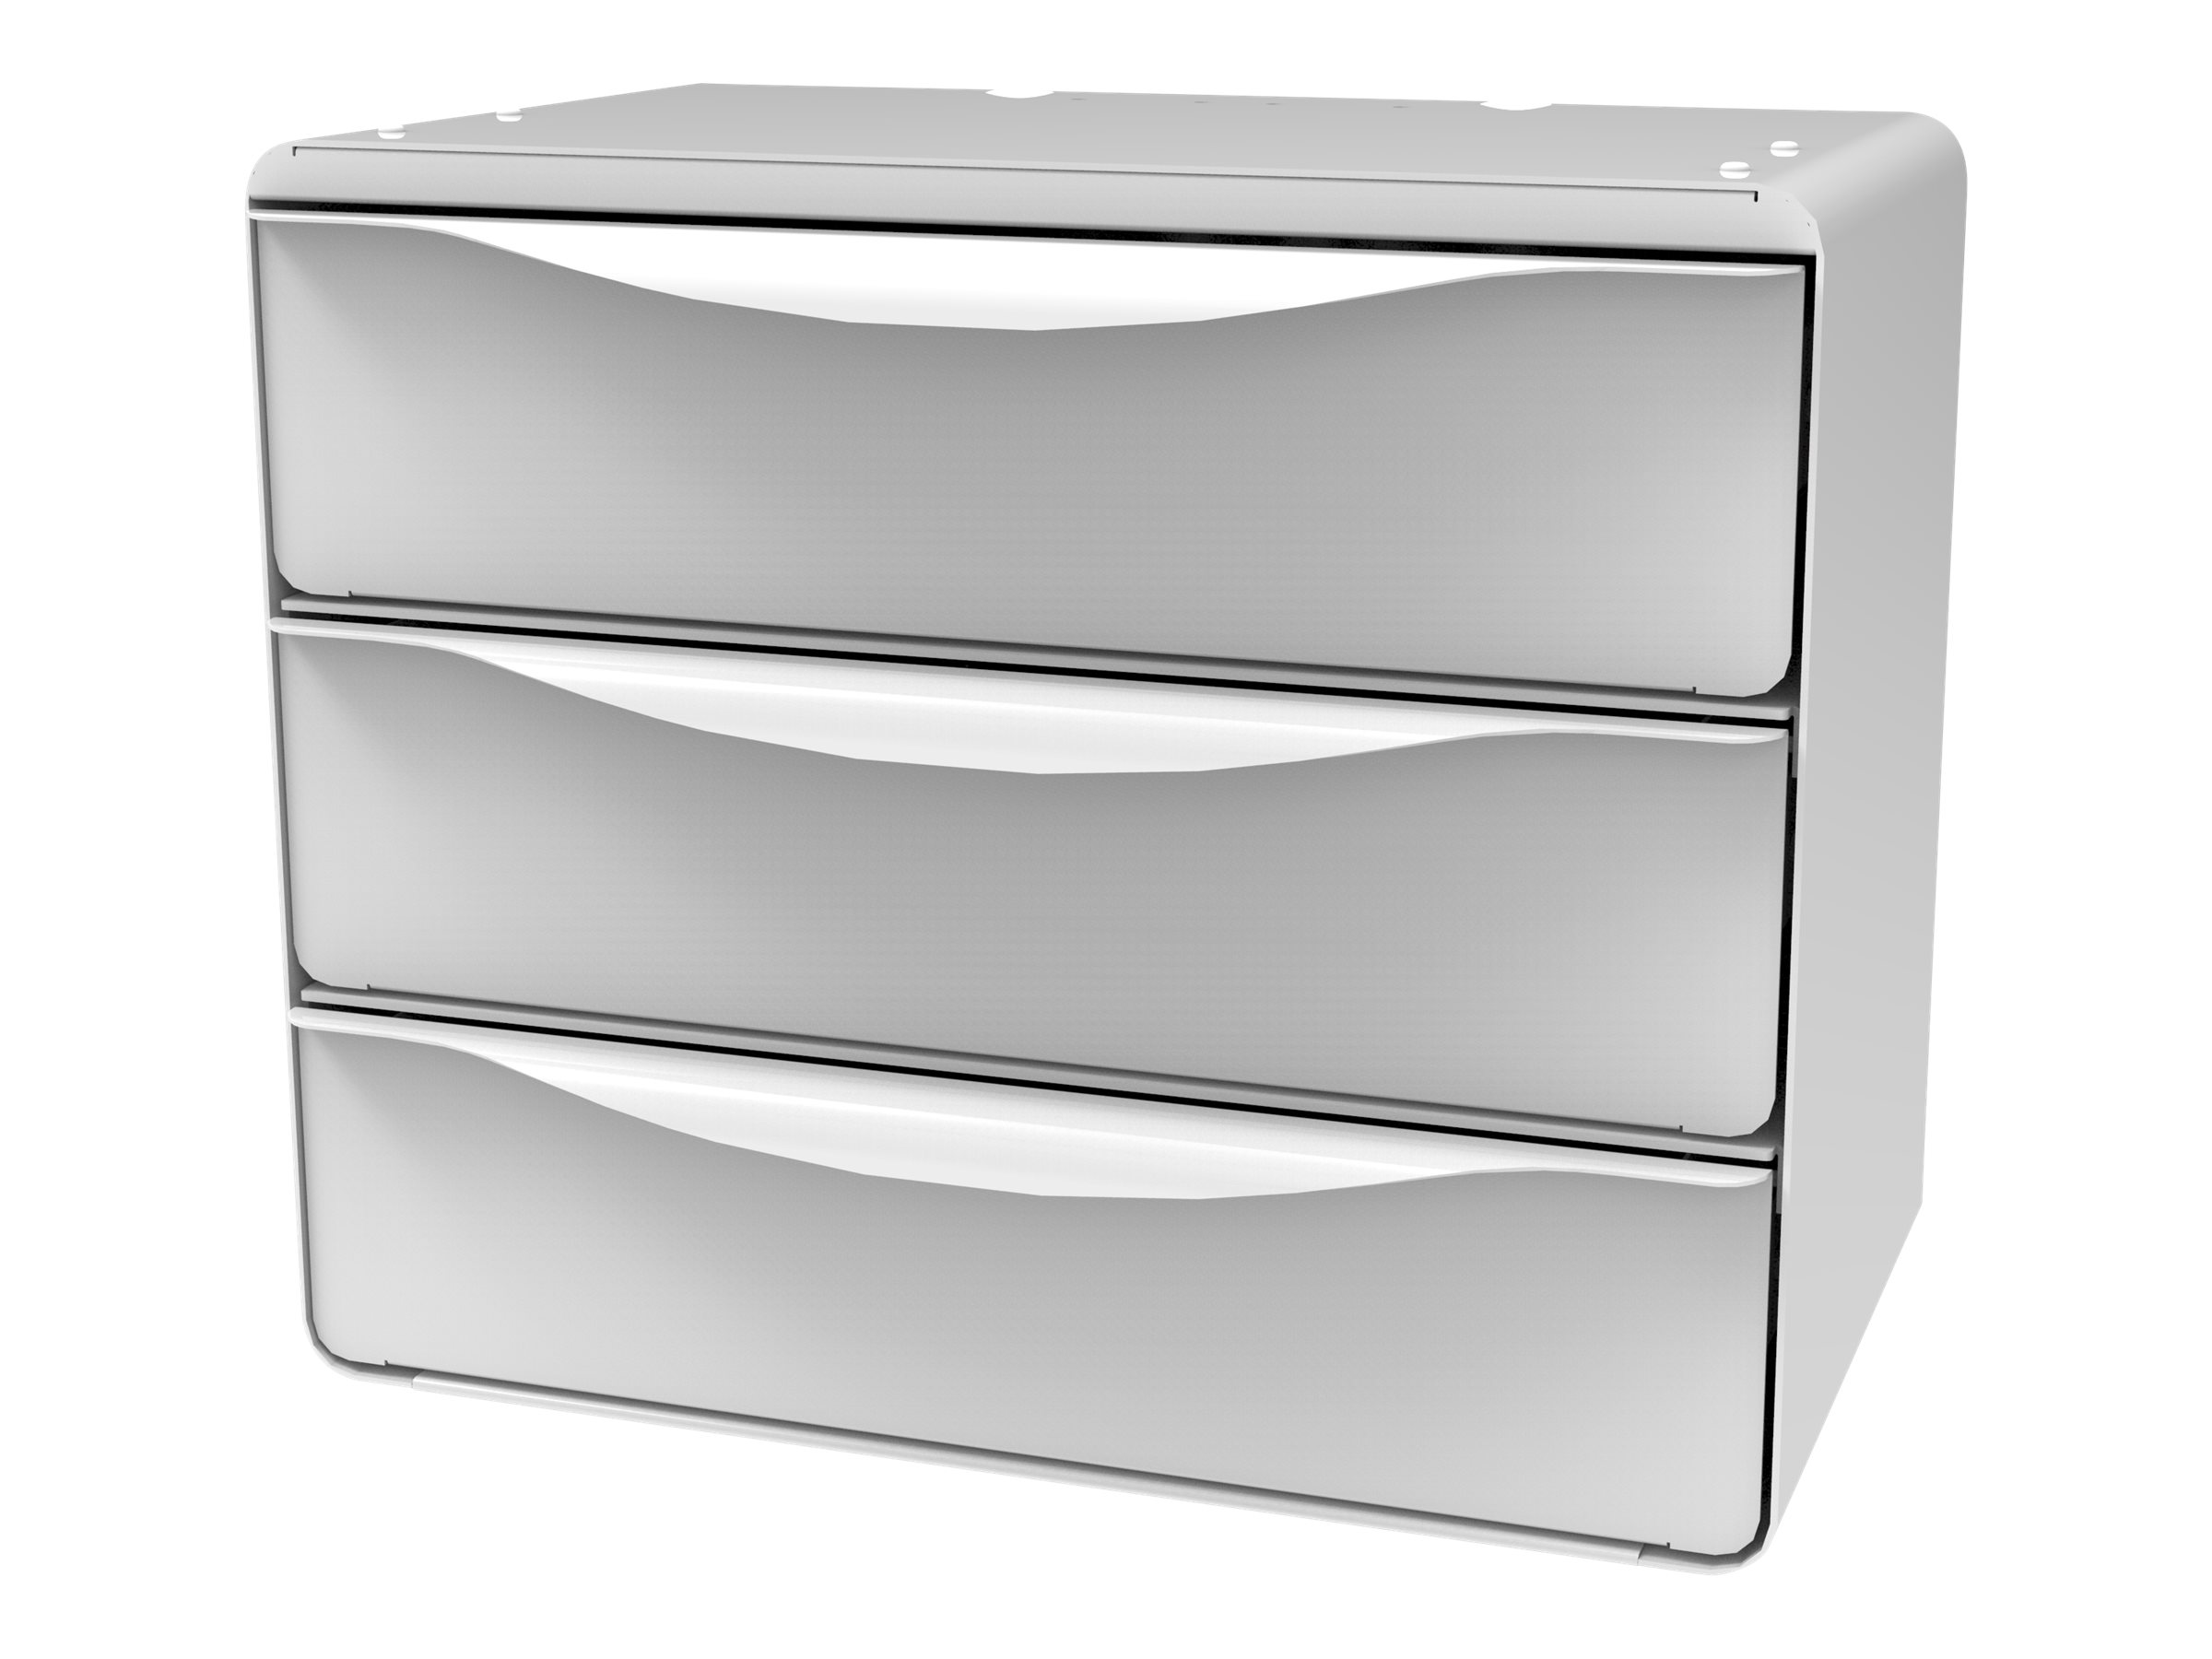 JACO Drawer System - Cabinet - Triple 3 Inch Drawer, Side Open, Touch Pad-Lock - mounting component